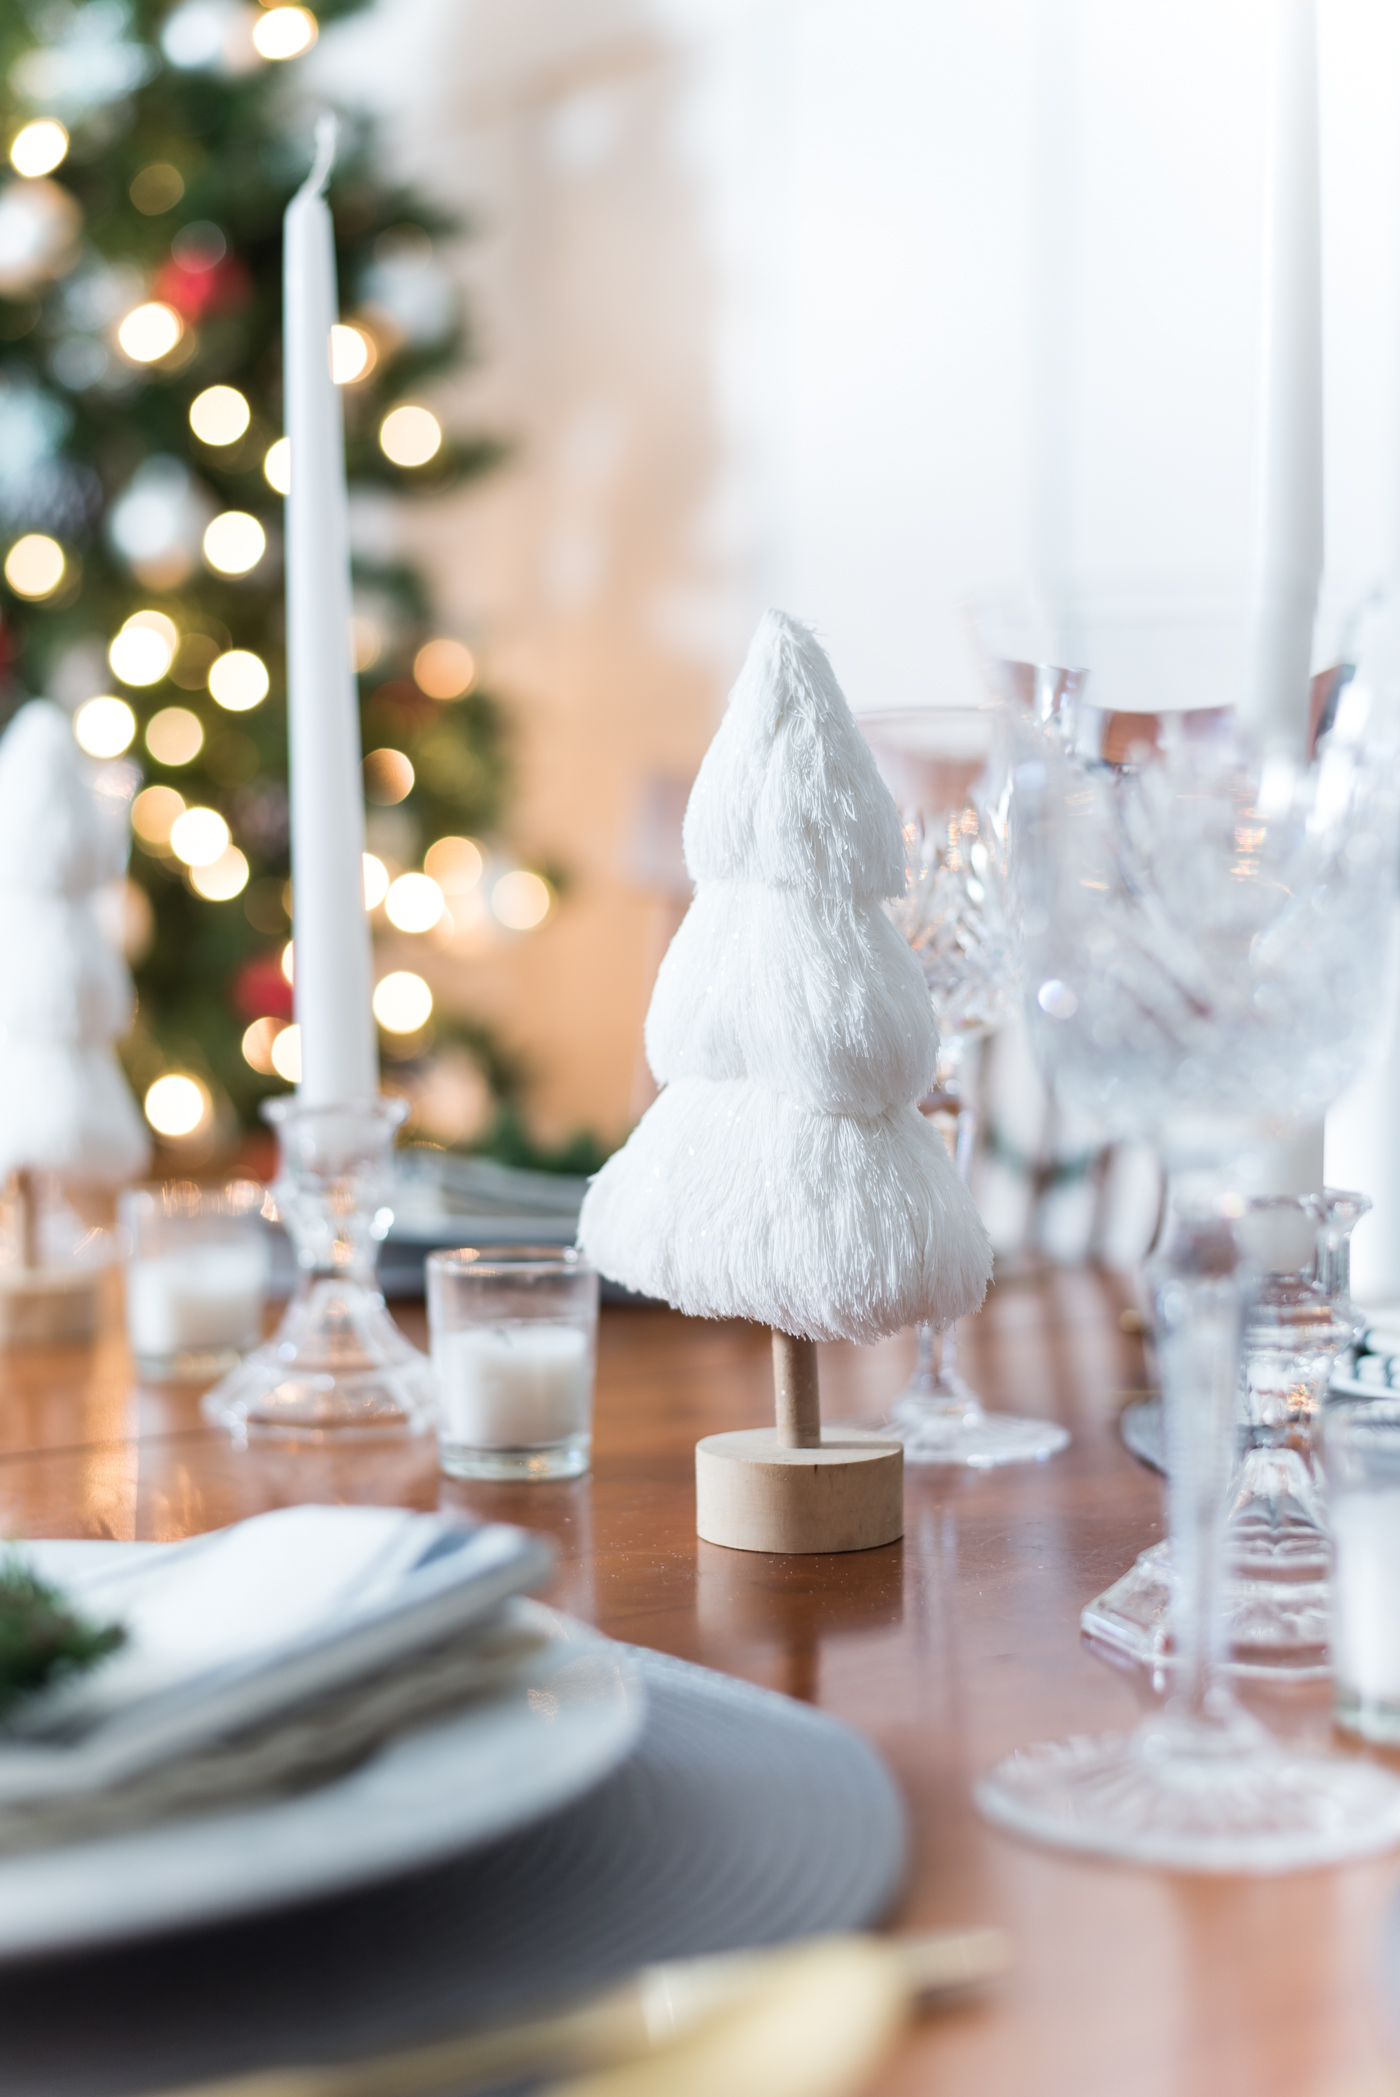 Christmas Table Setting in Gray and Whites